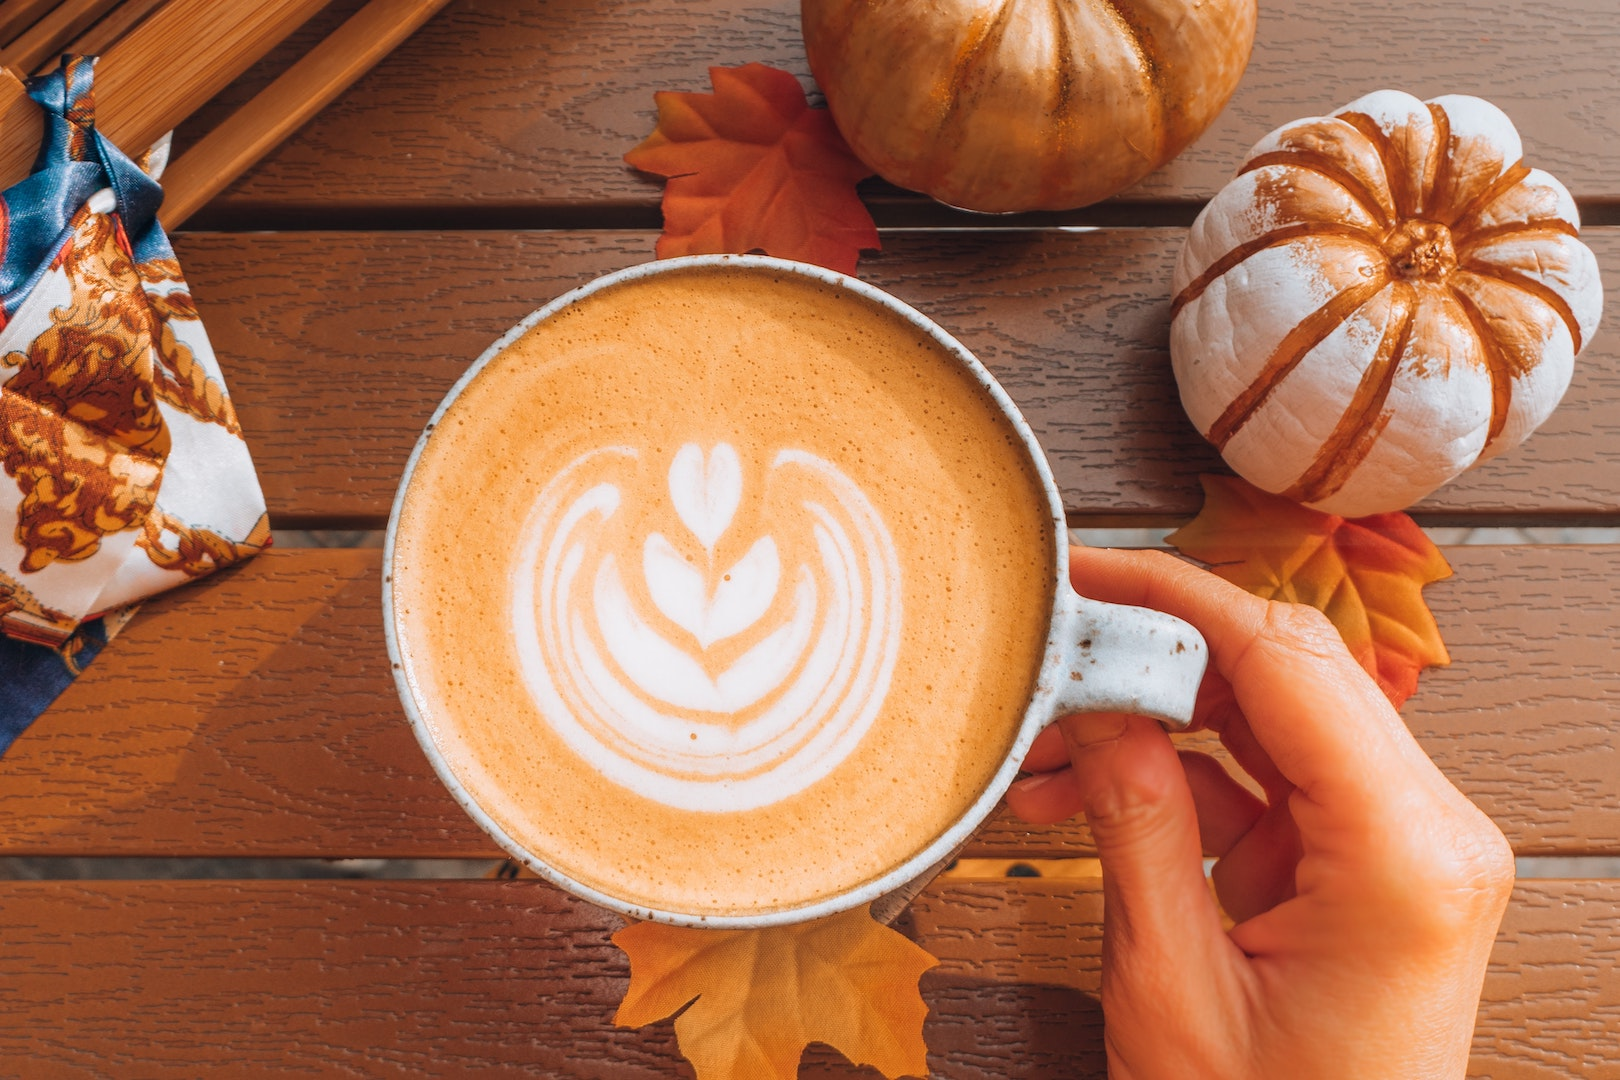 Image of a pumpkin spice latte, made with LĒVO pumpkin spice syrup.